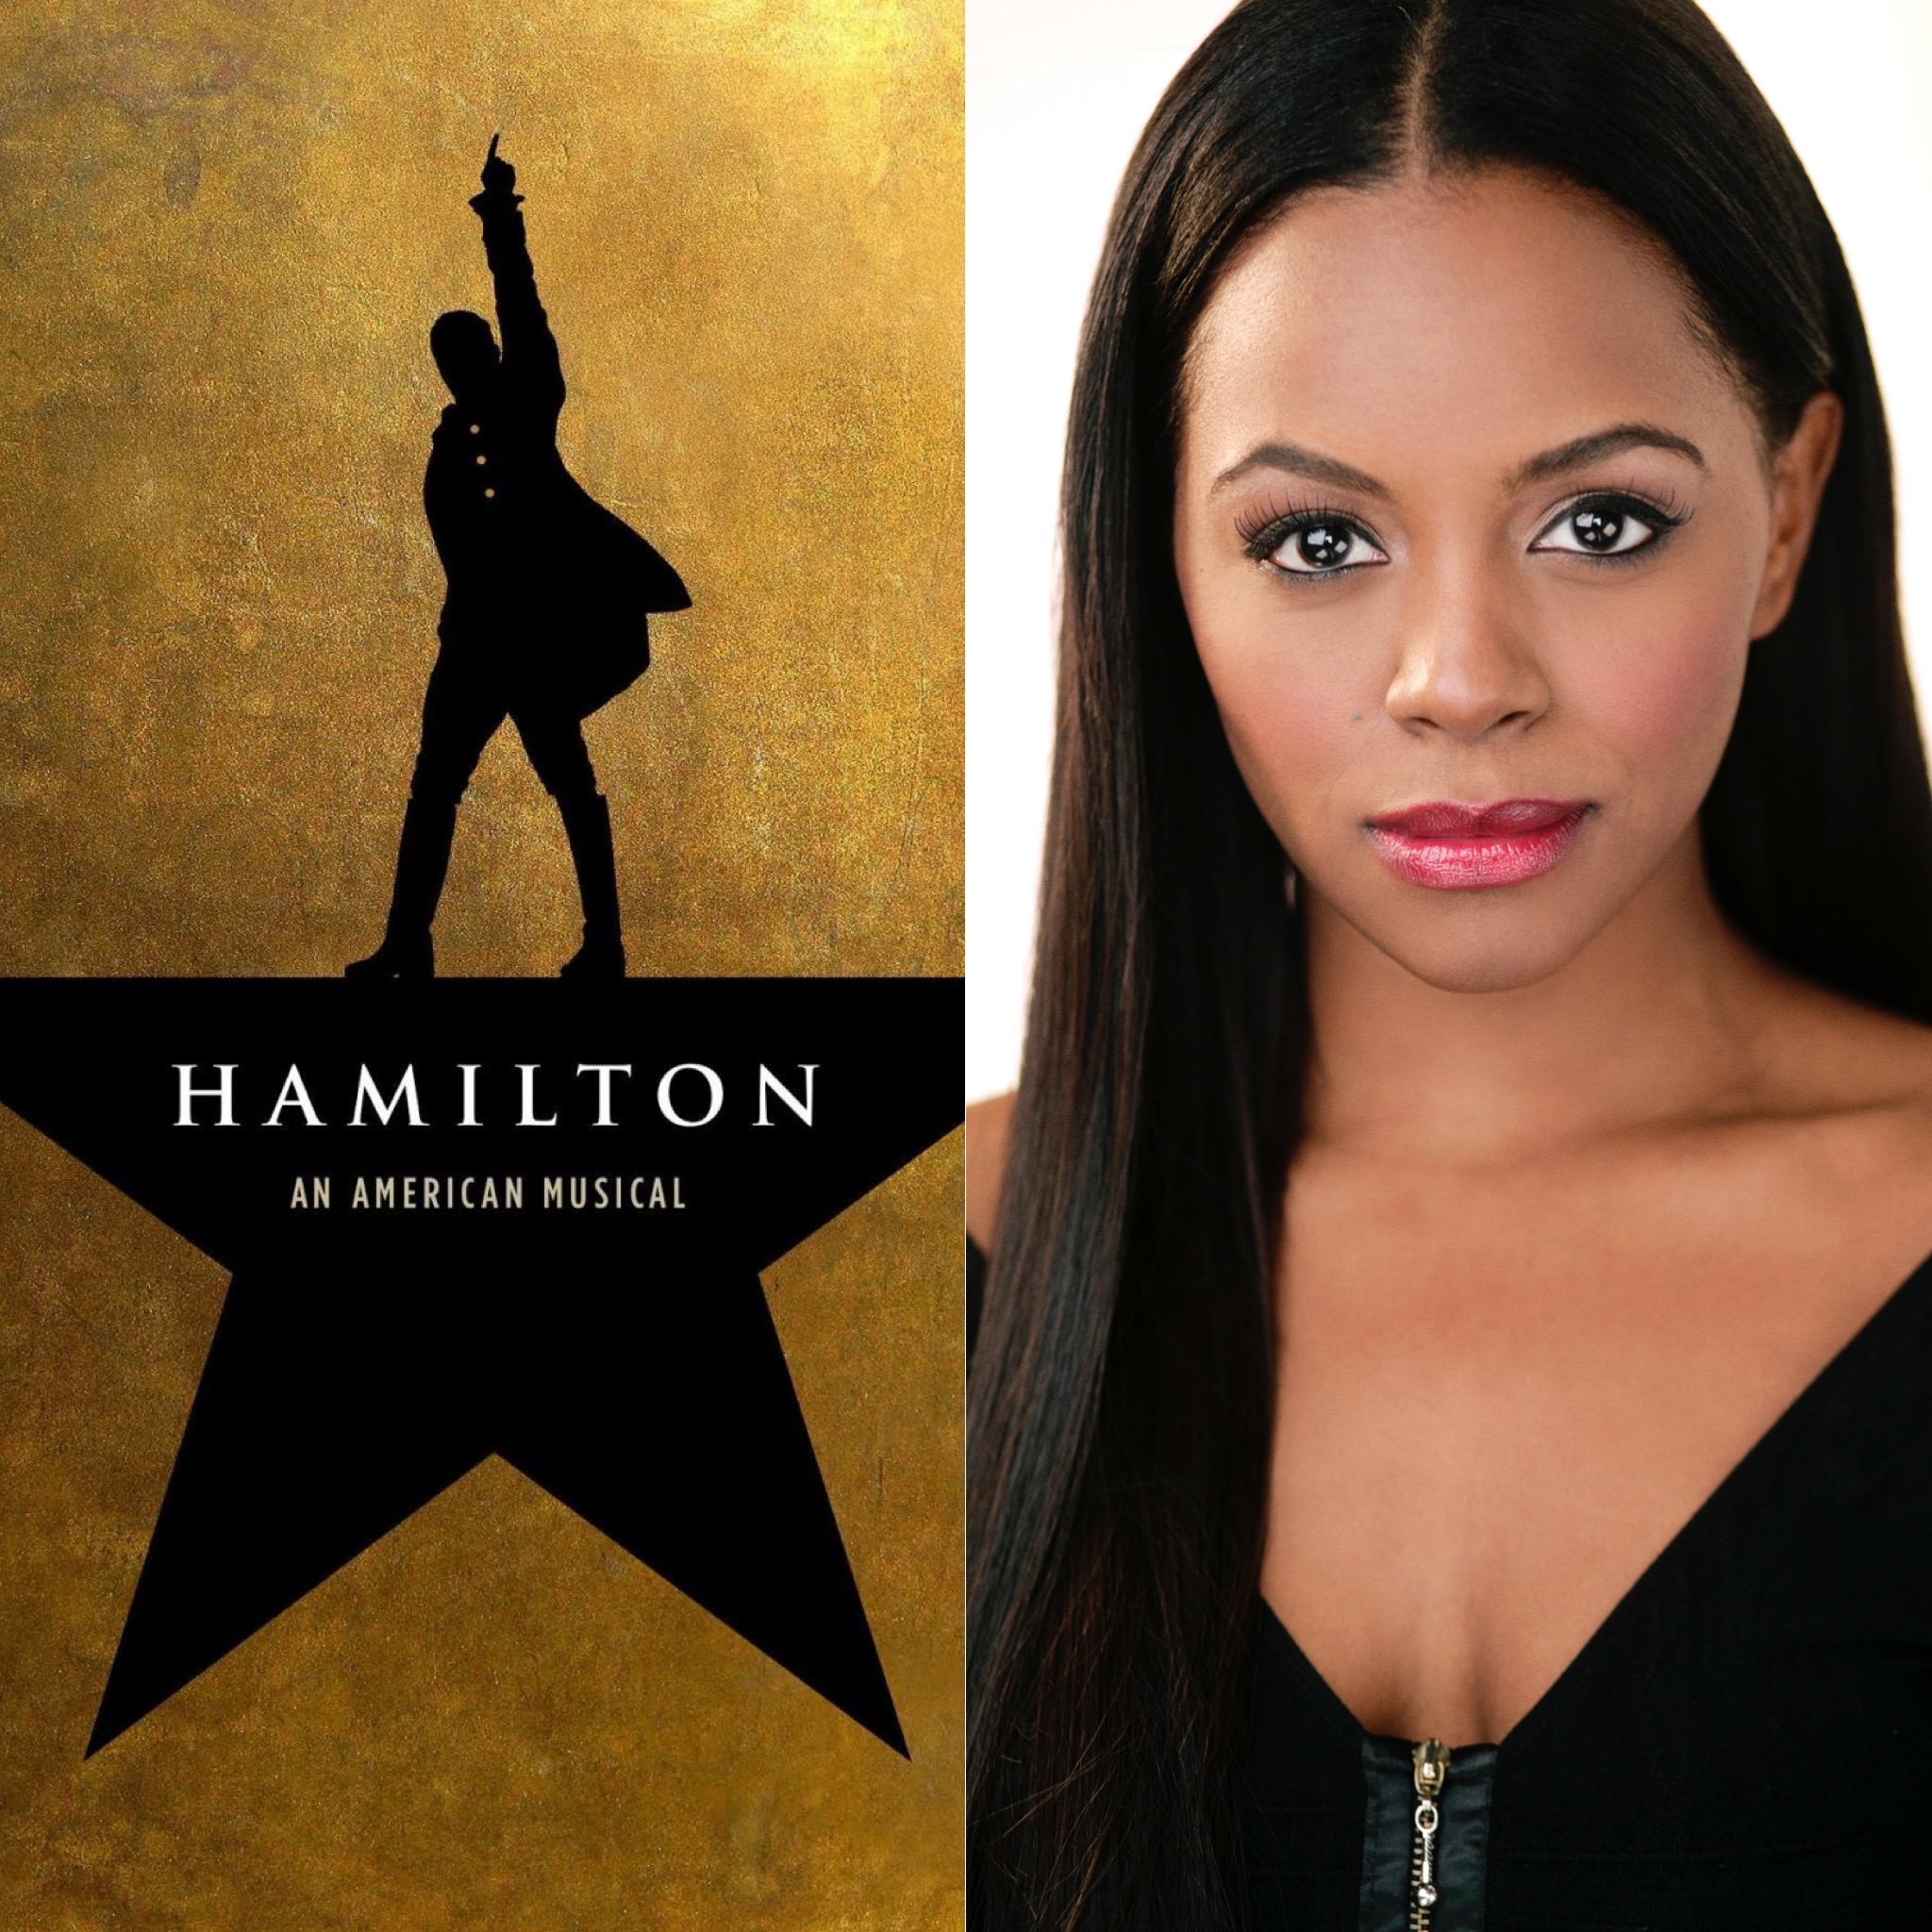 KJB is Starring in Hamilton Broadway